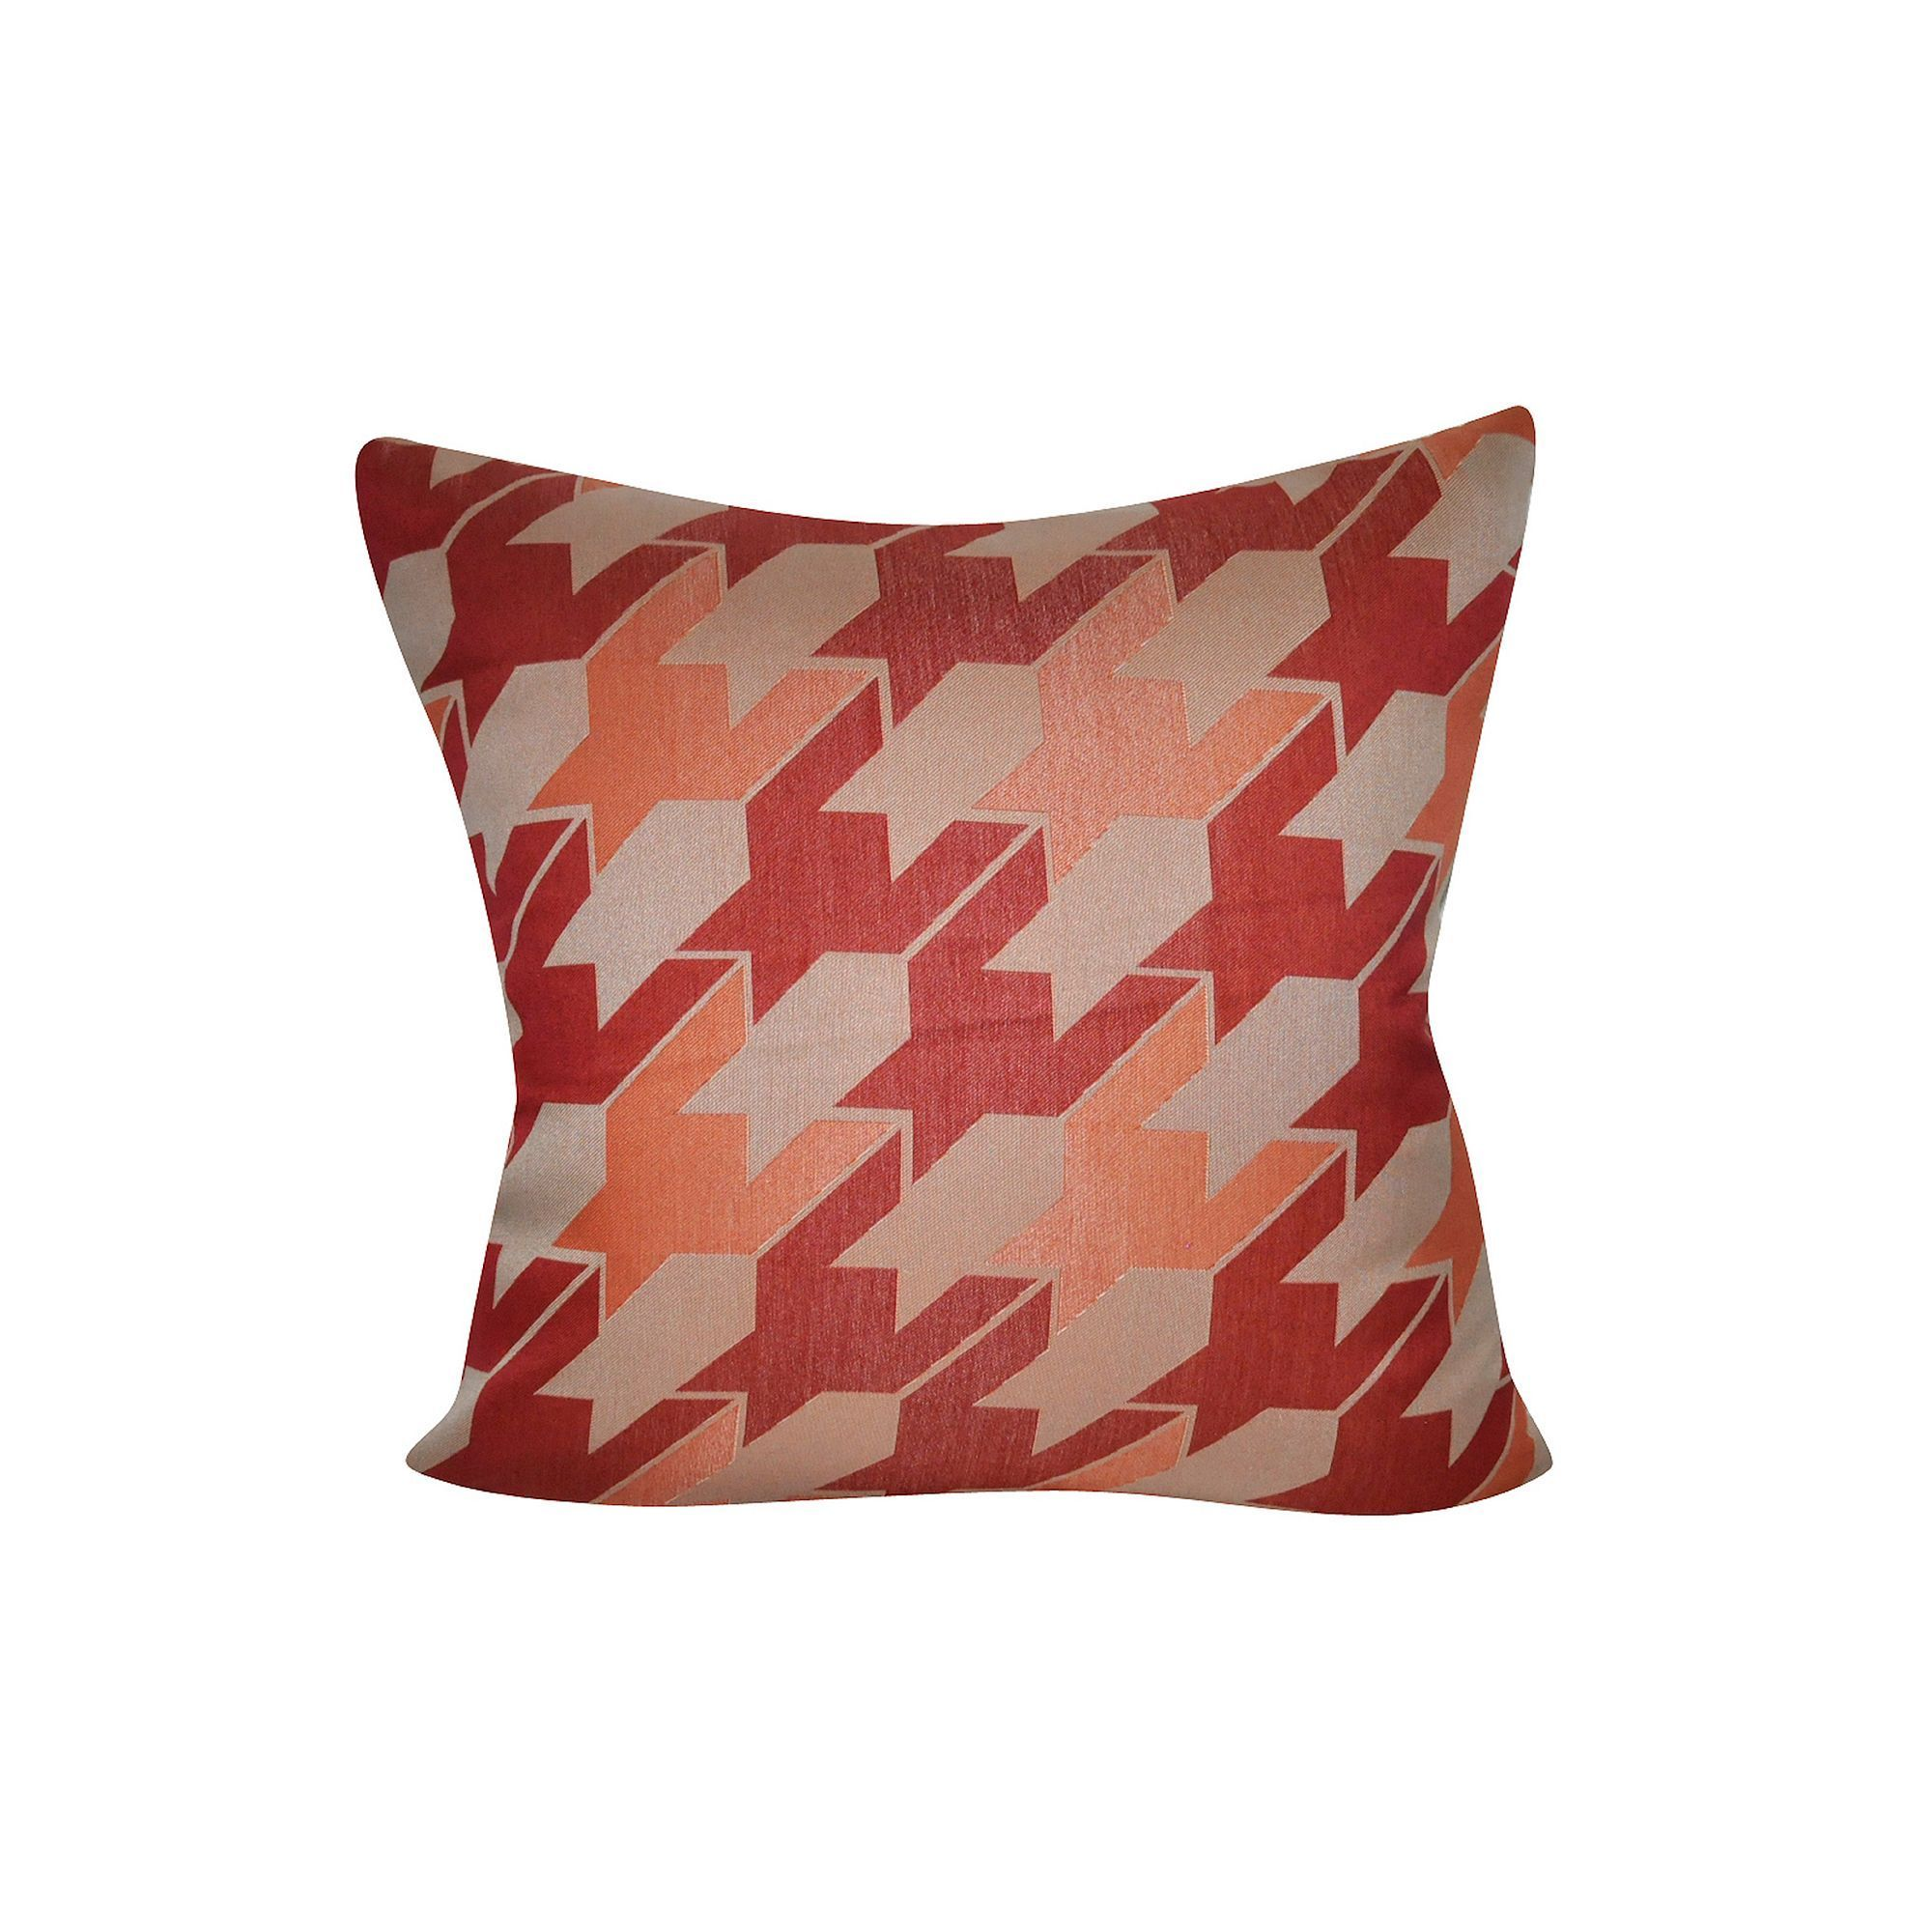 gold pillow and silk best xfile red for style throw pillows cushion uncategorized desicrafts raw u cover